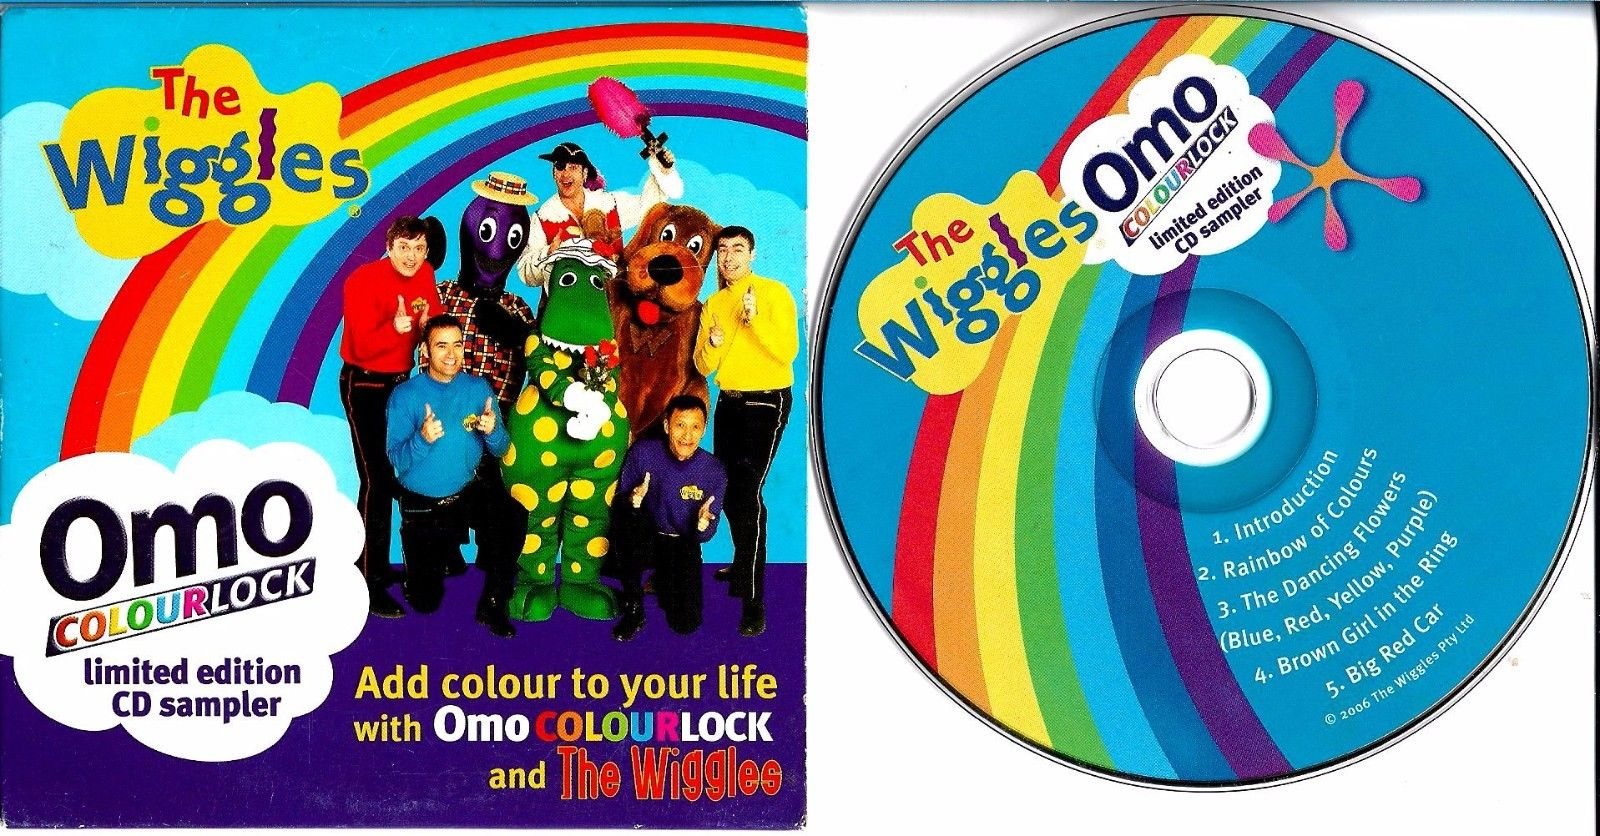 Omo Colourlock Limited Edition CD Sampler